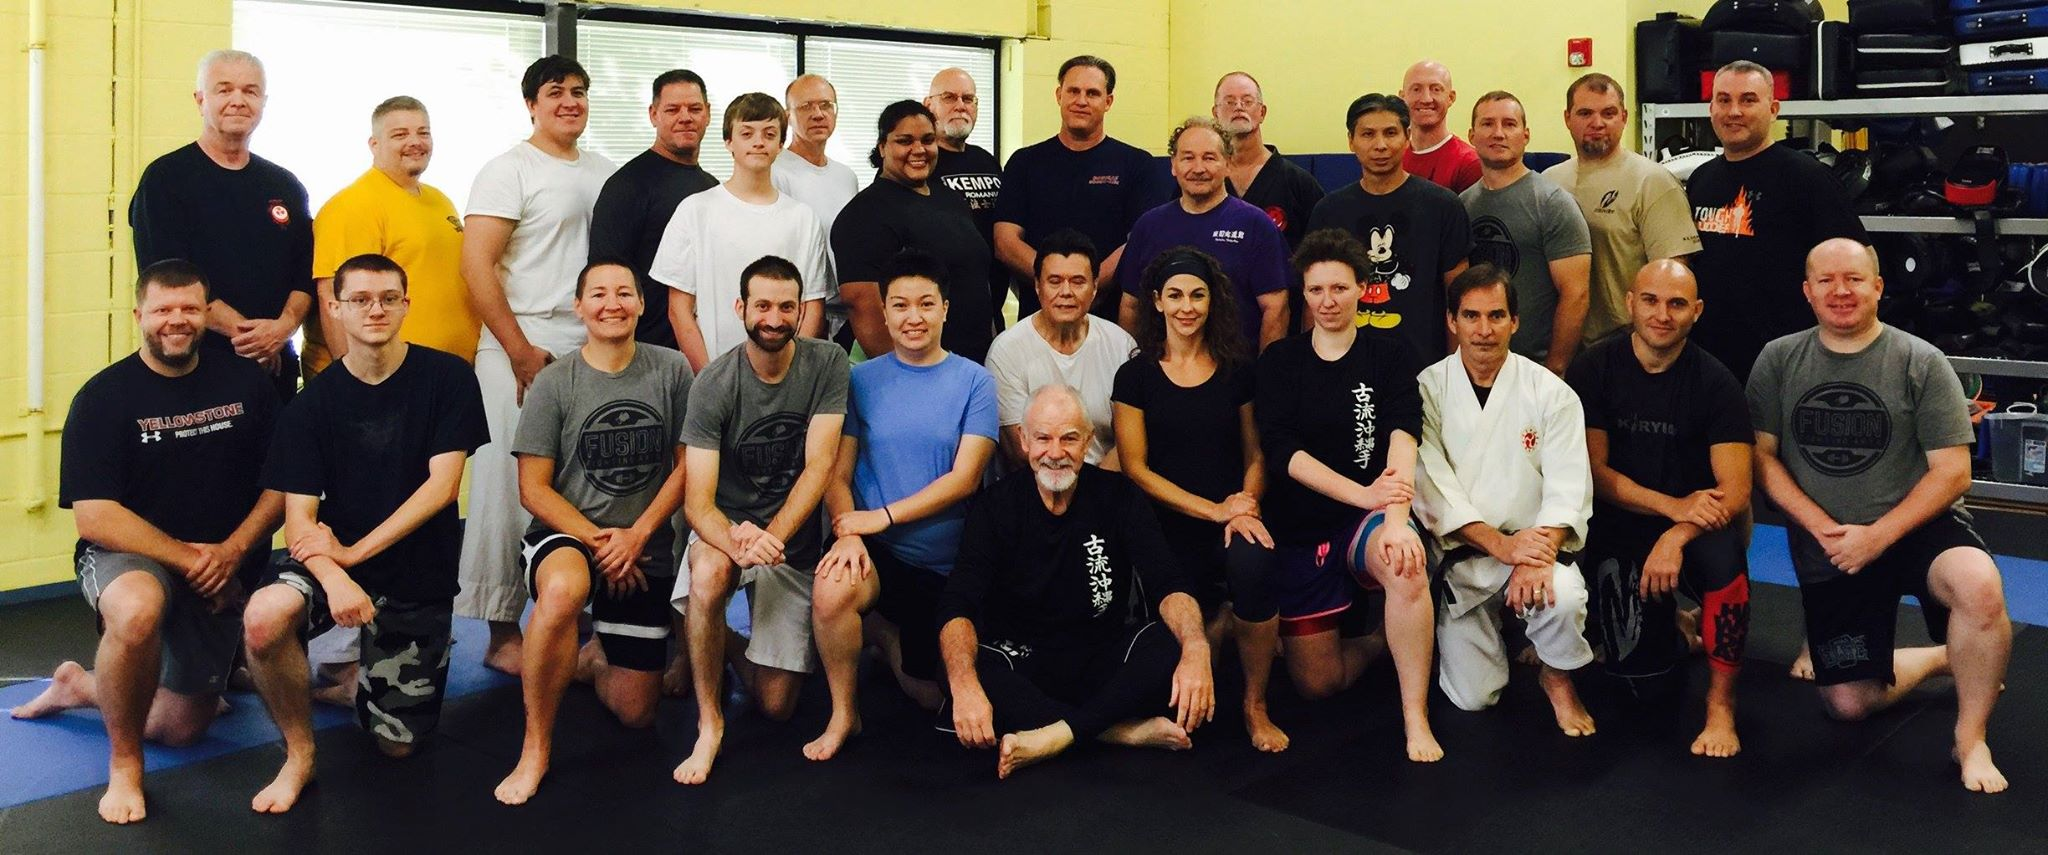 KU Seminar Ashburn Virginia